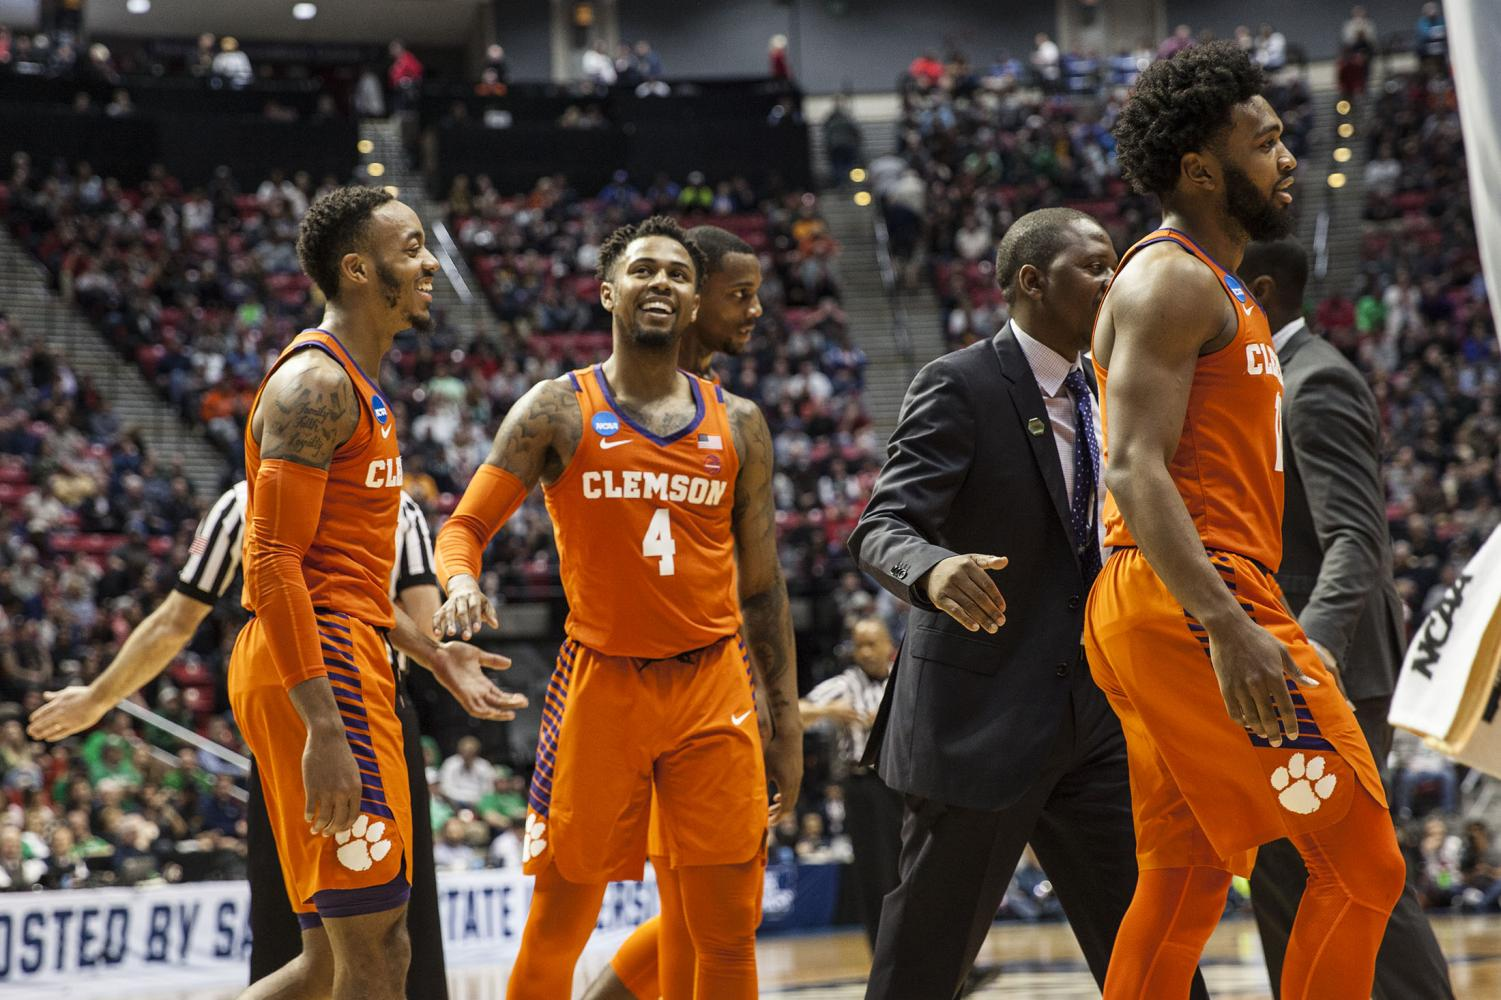 Late non-call helps Auburn hold off Charleston